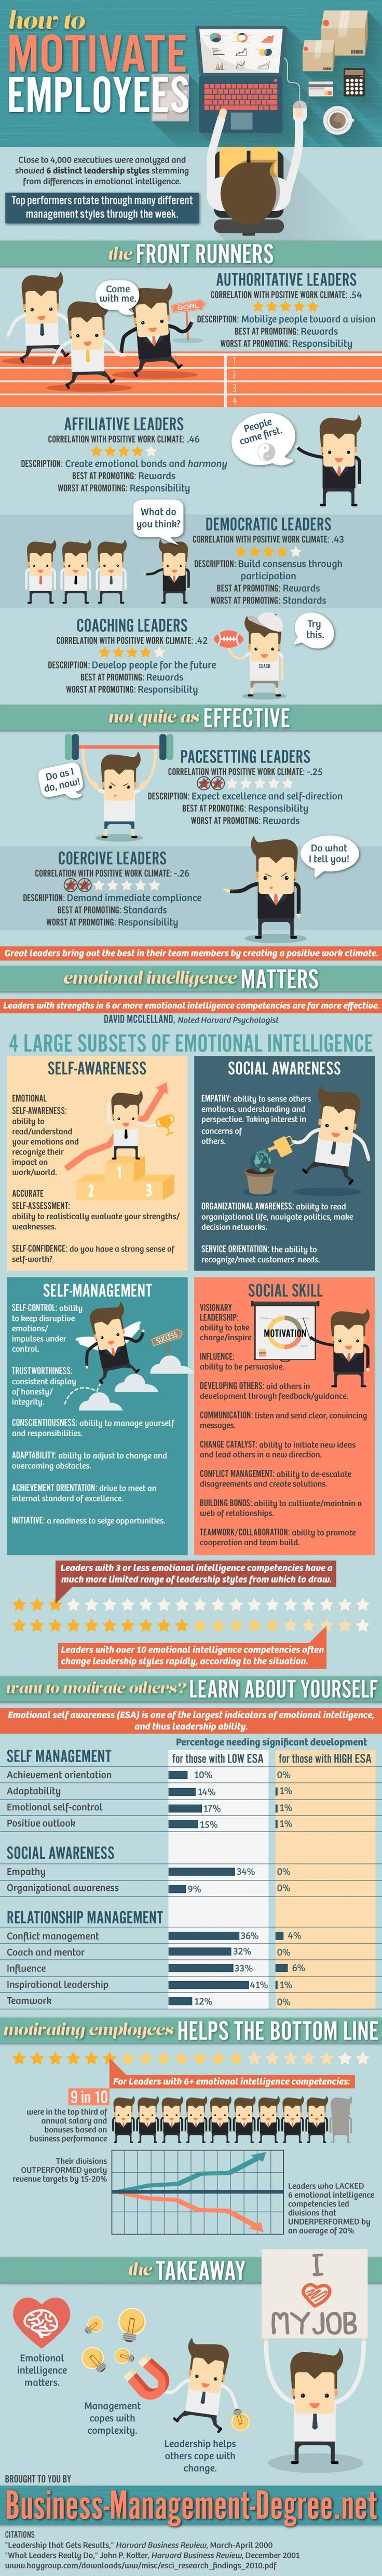 How to Become an Inspirational Leader INFOGRAPHIC,  BLOG